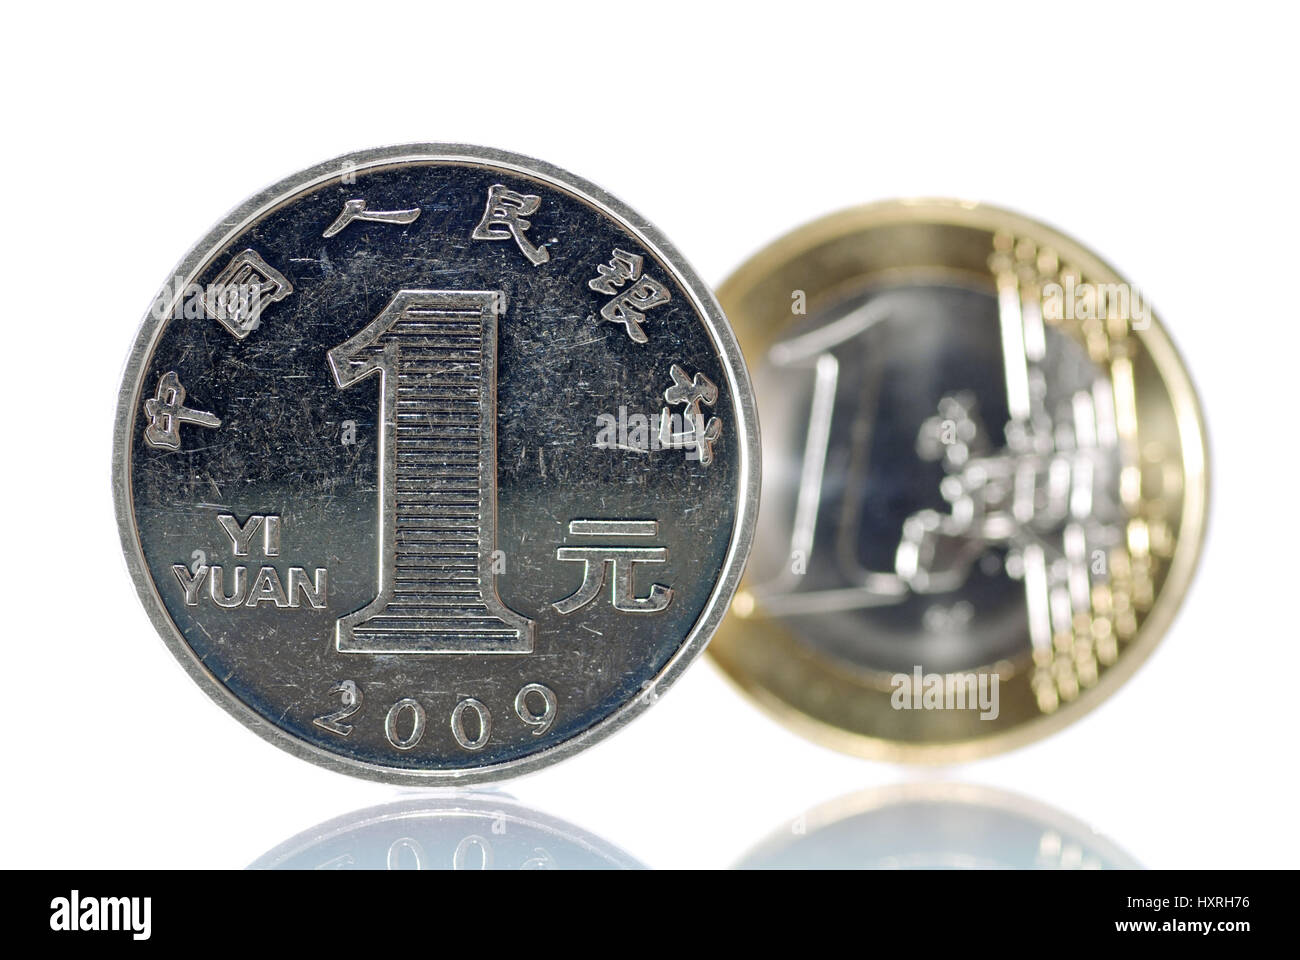 One-yuan coin (Chinese currency) before an euro-coin one, economic development in China and Europe, Ein-Yuan-Münze - Stock Image